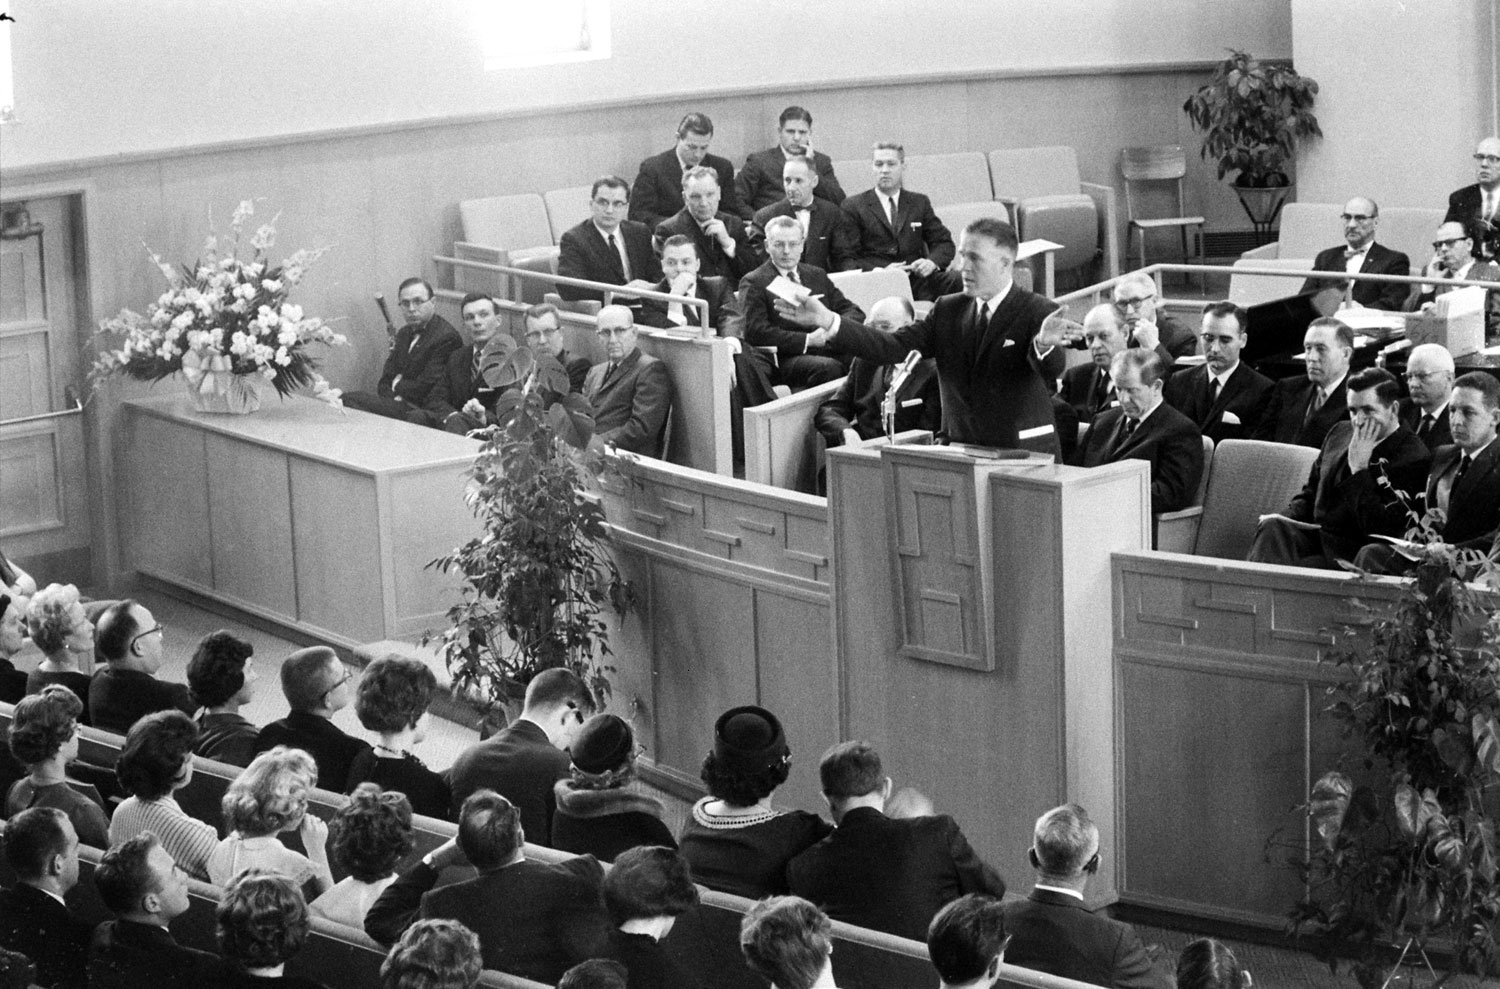 George Romney officiates during a Mormon service, Michigan, 1962.